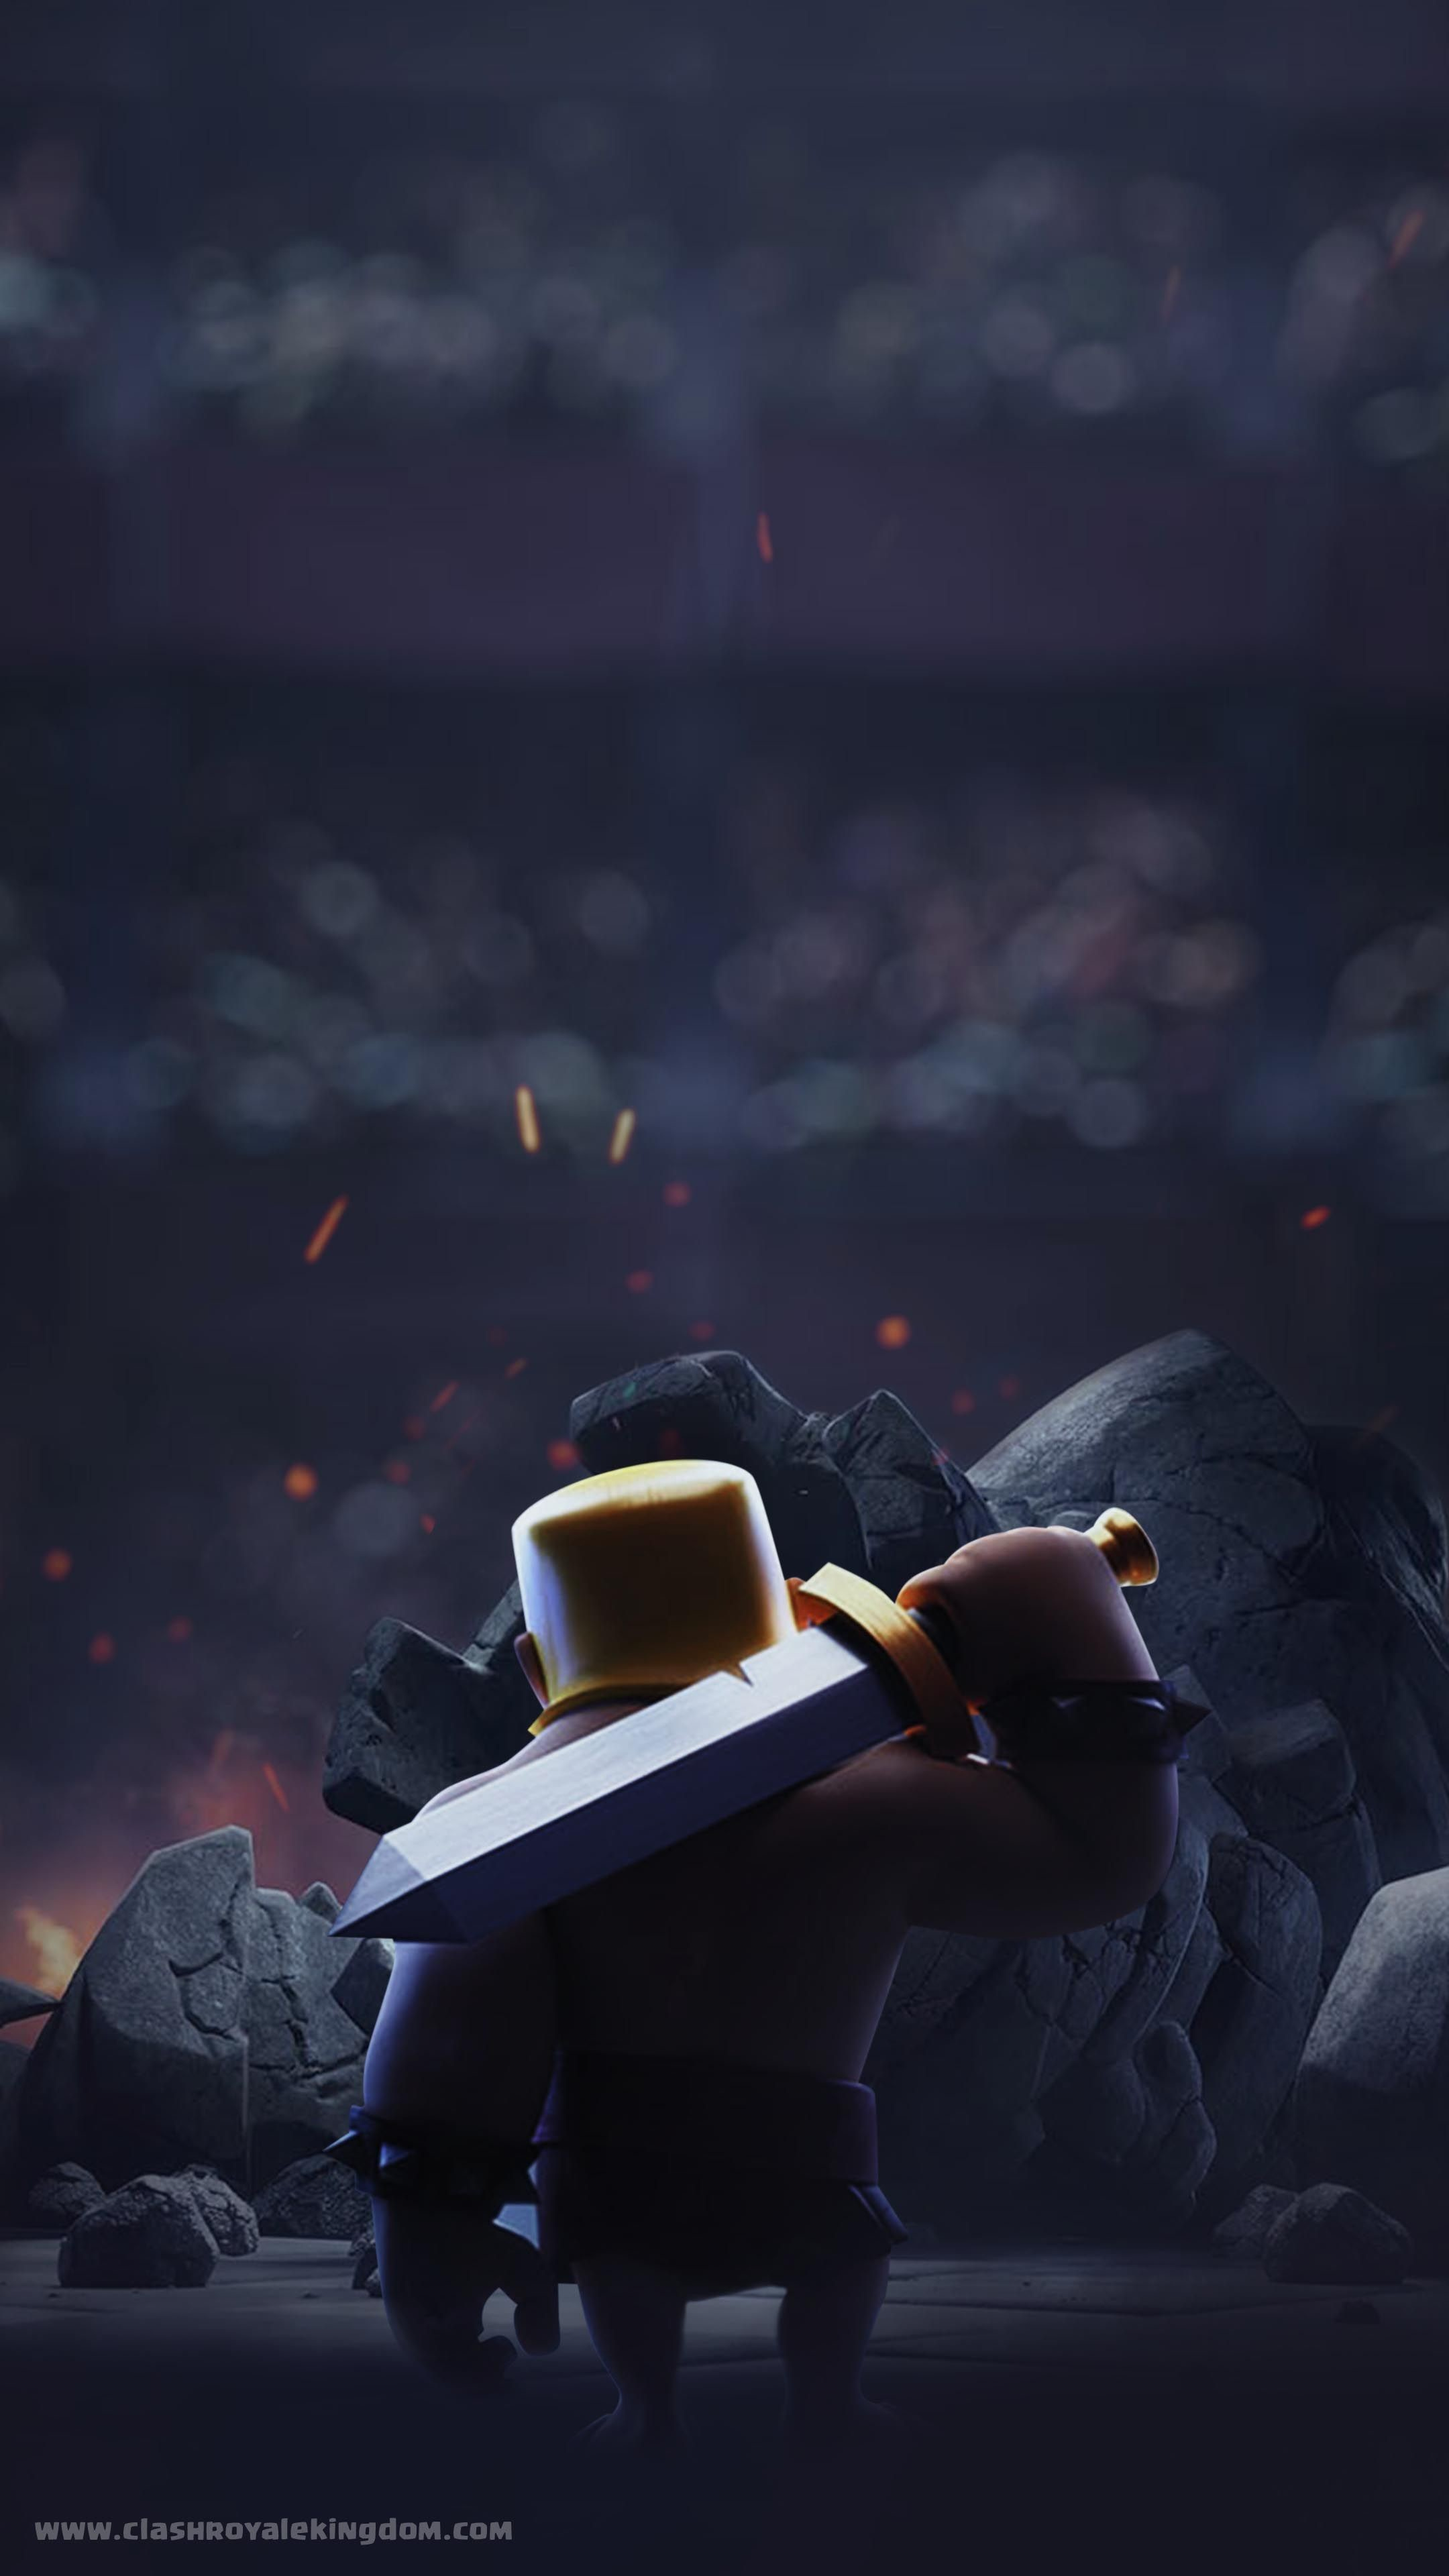 Supercell Wallpaper 68 Pictures